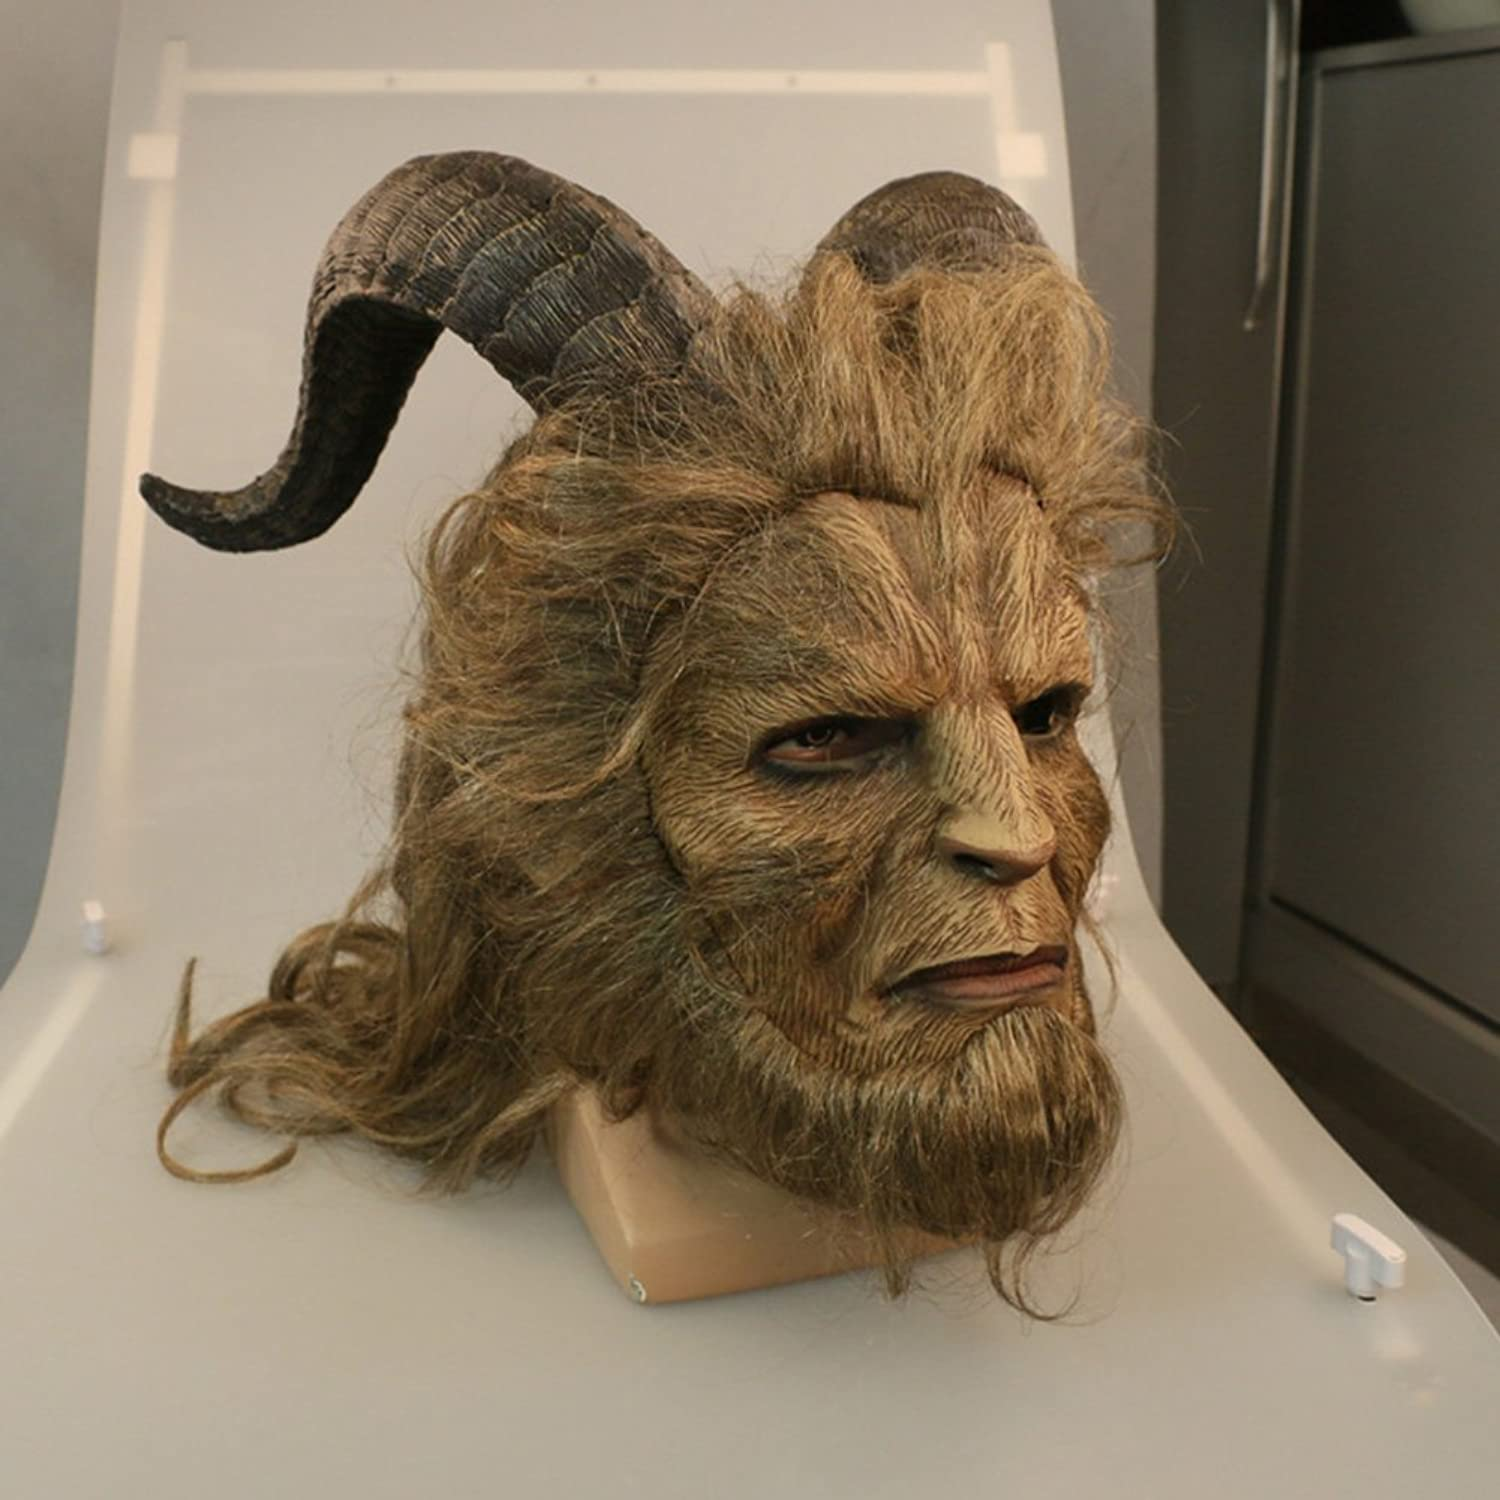 KY YK Beast Mask Beauty and Adult Helmet Full Face Mask Royal Mask Robbie Benson LaTeX Mask Makeup cosplay Party Halloween LaTeX Mask (Long Hair)